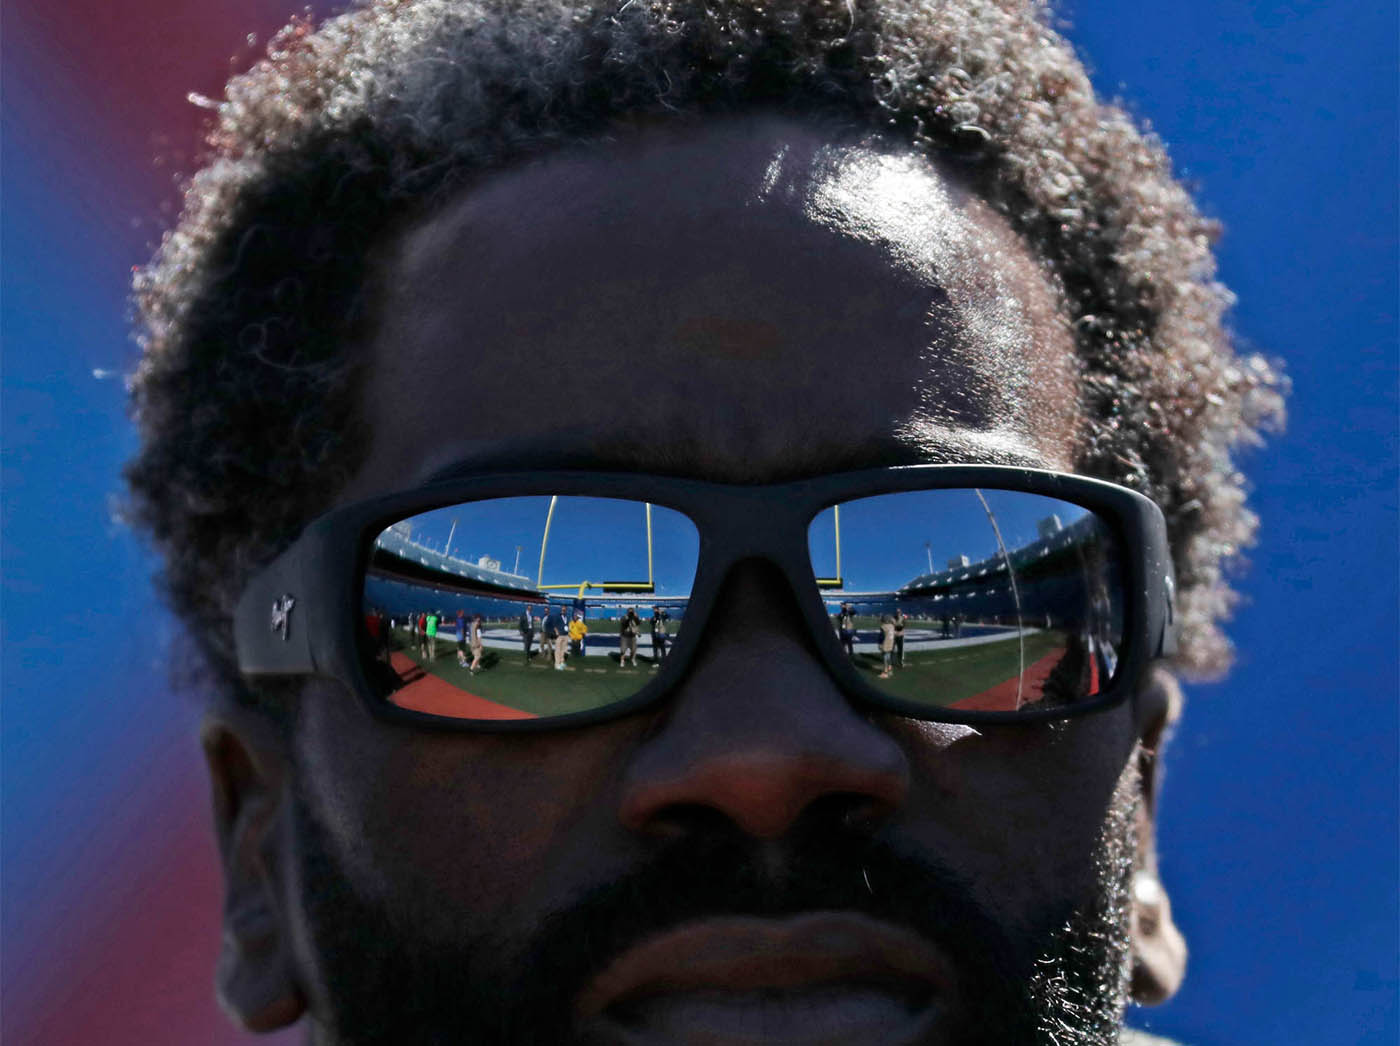 Buffalo Bills defensve coach Ed Reed walks out to pregame prior to playing the Arizona Cardinals at New Era Field on Sunday, Sept. 25, 2016. (Harry Scull Jr./Buffalo News)